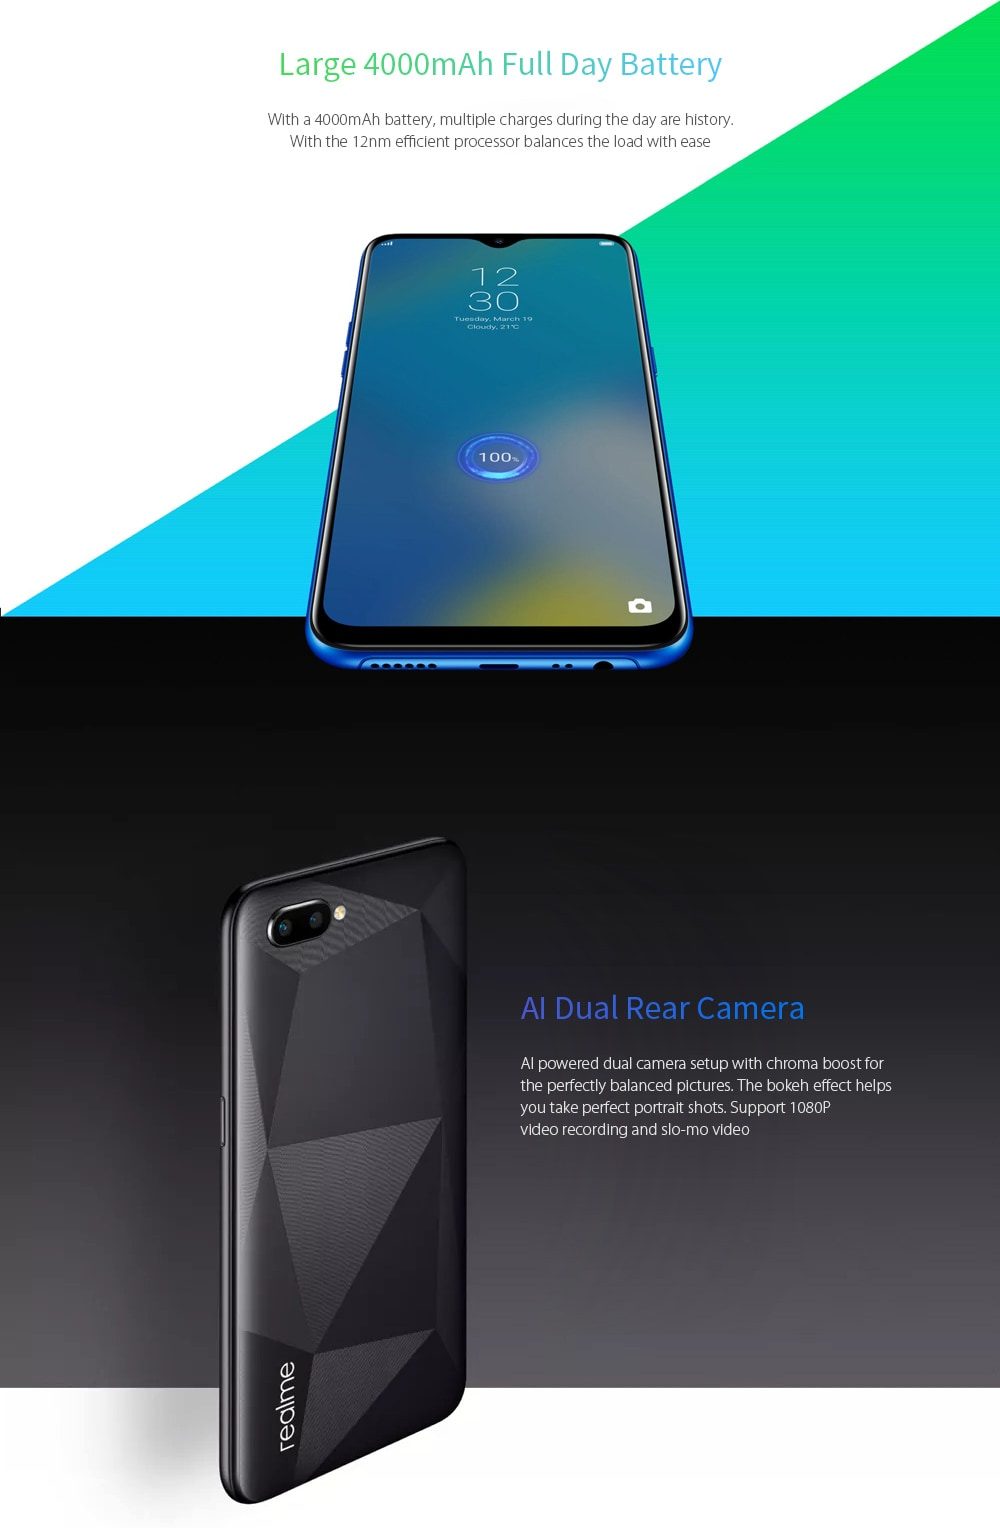 OPPO Realme C2 4G Phablet 6.1 inch Android 9.0 Helio P22 Octa Core 13.0MP + 2.0MP Rear Camera 4000mAh Battery- Black